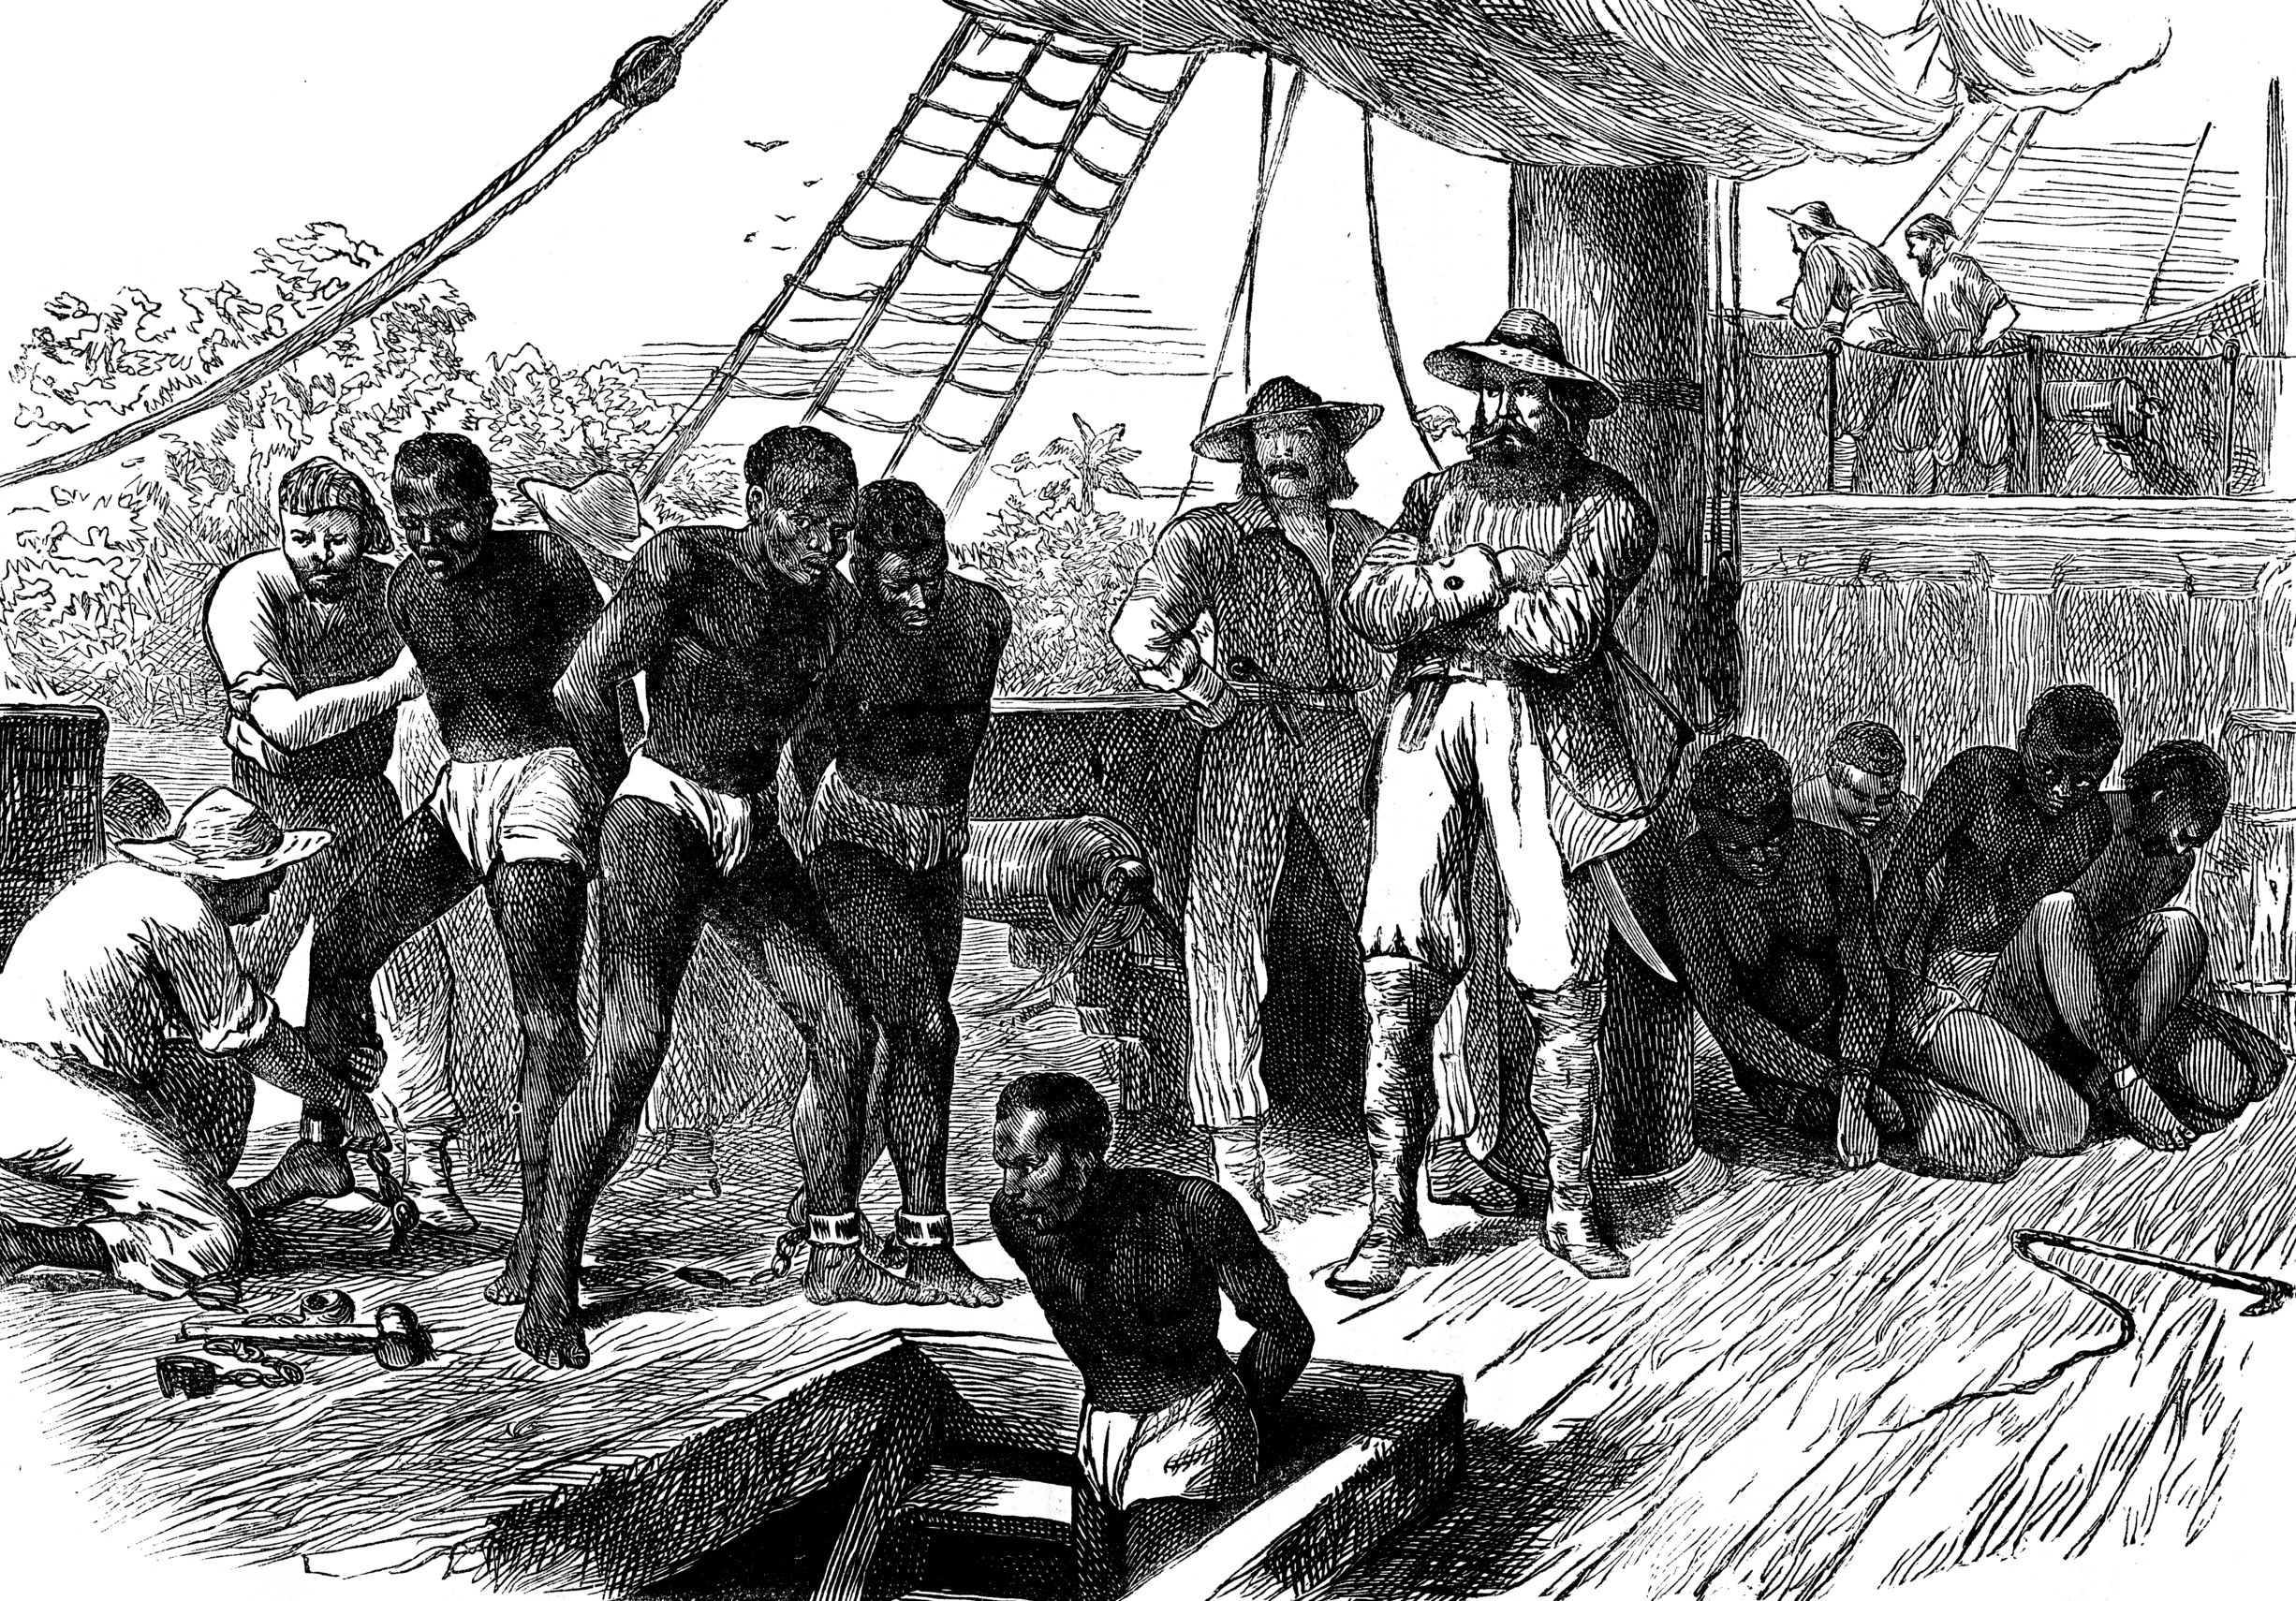 Here Are Seven Things You Probably Didn't Know Were Connected to Slavery